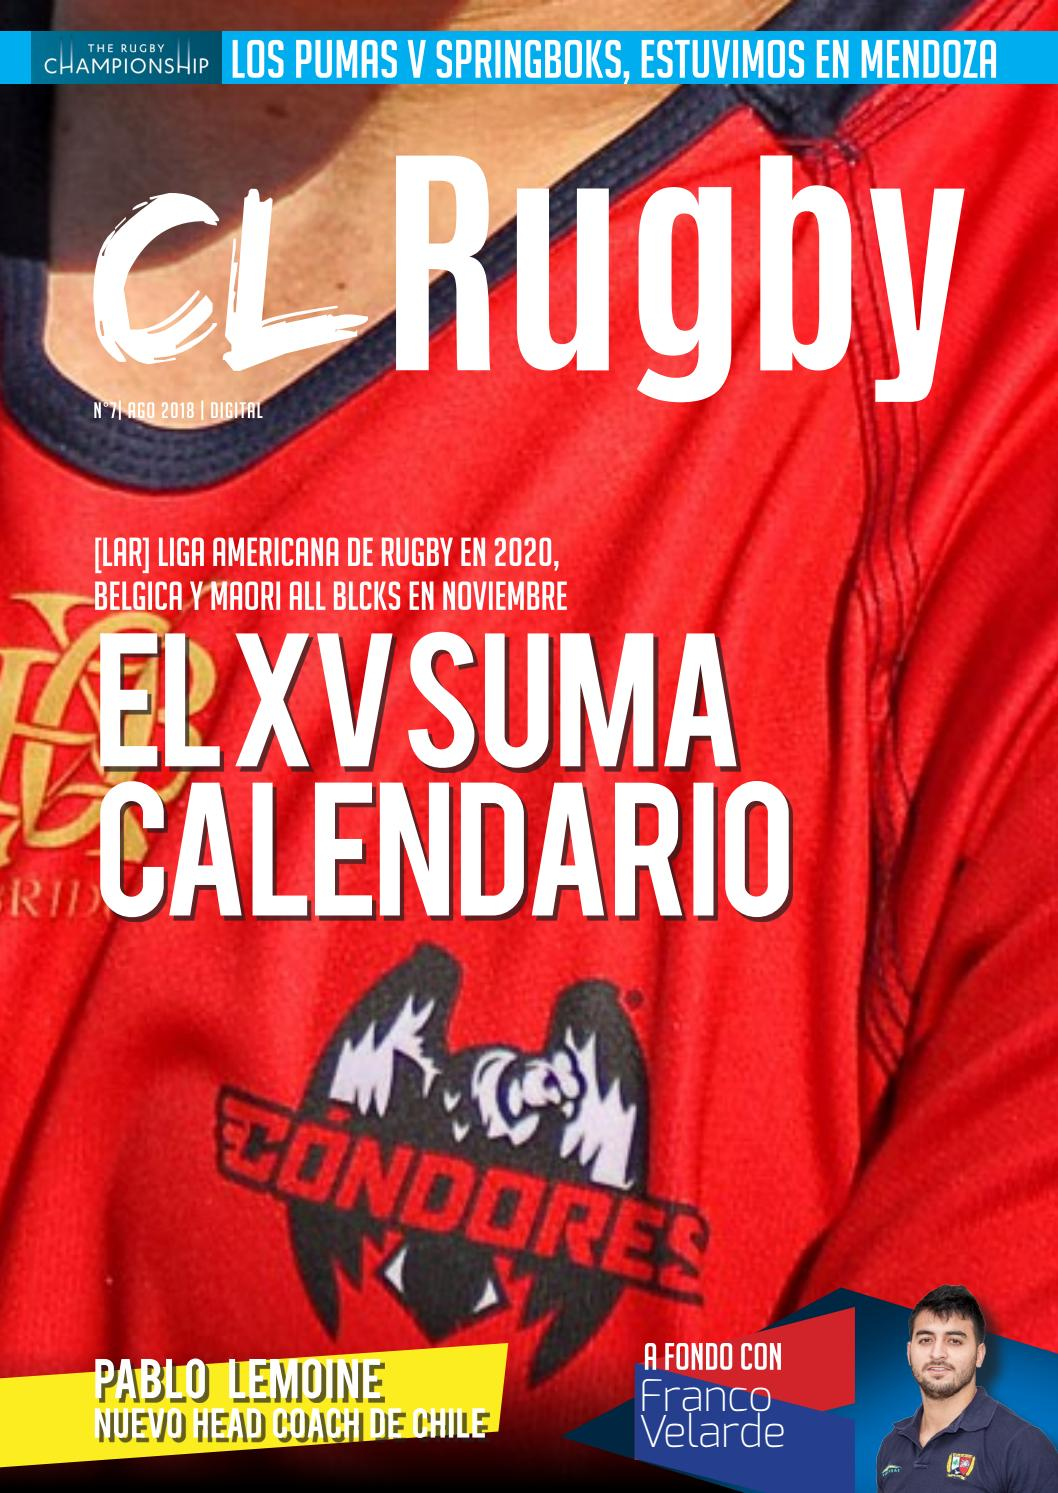 Rugby Championship 2020 Calendario.Revista Cl Rugby 007 By Rugbynoticias Chile Issuu